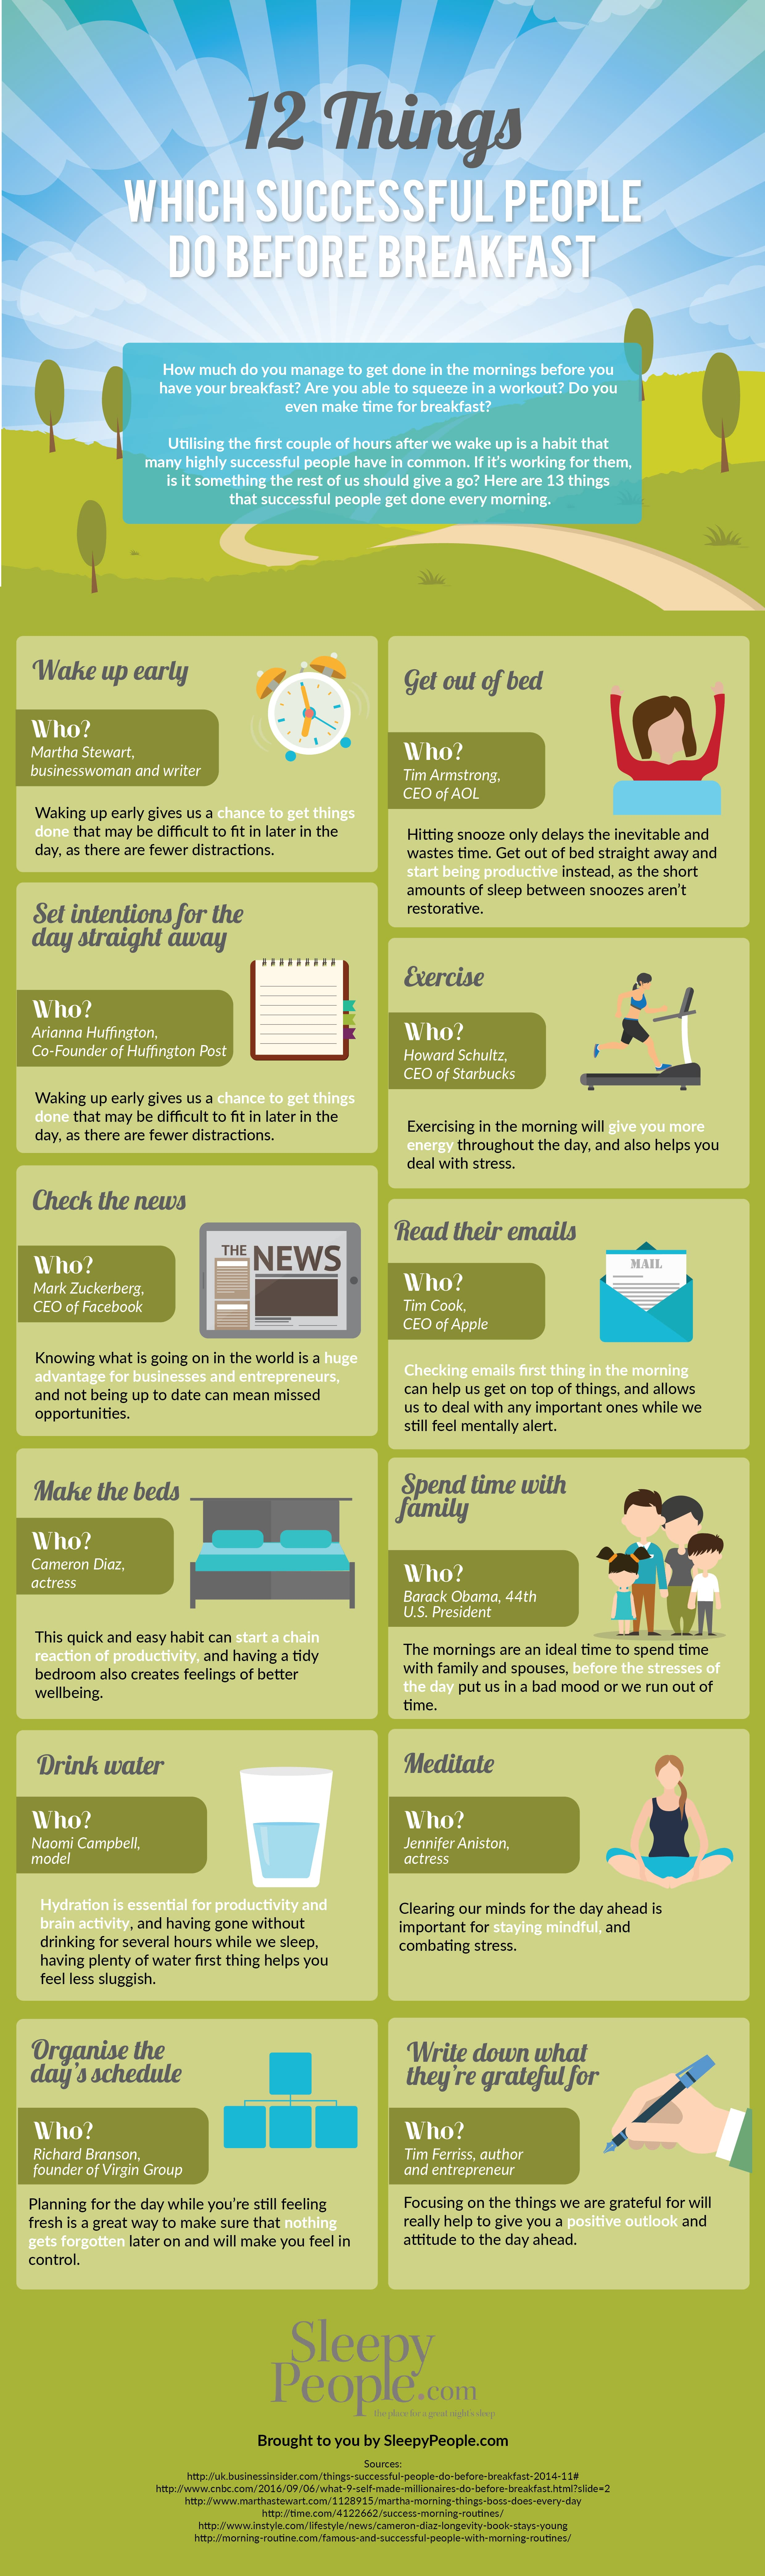 12 Things Which Successful People Do Before Breakfast [Infographic]